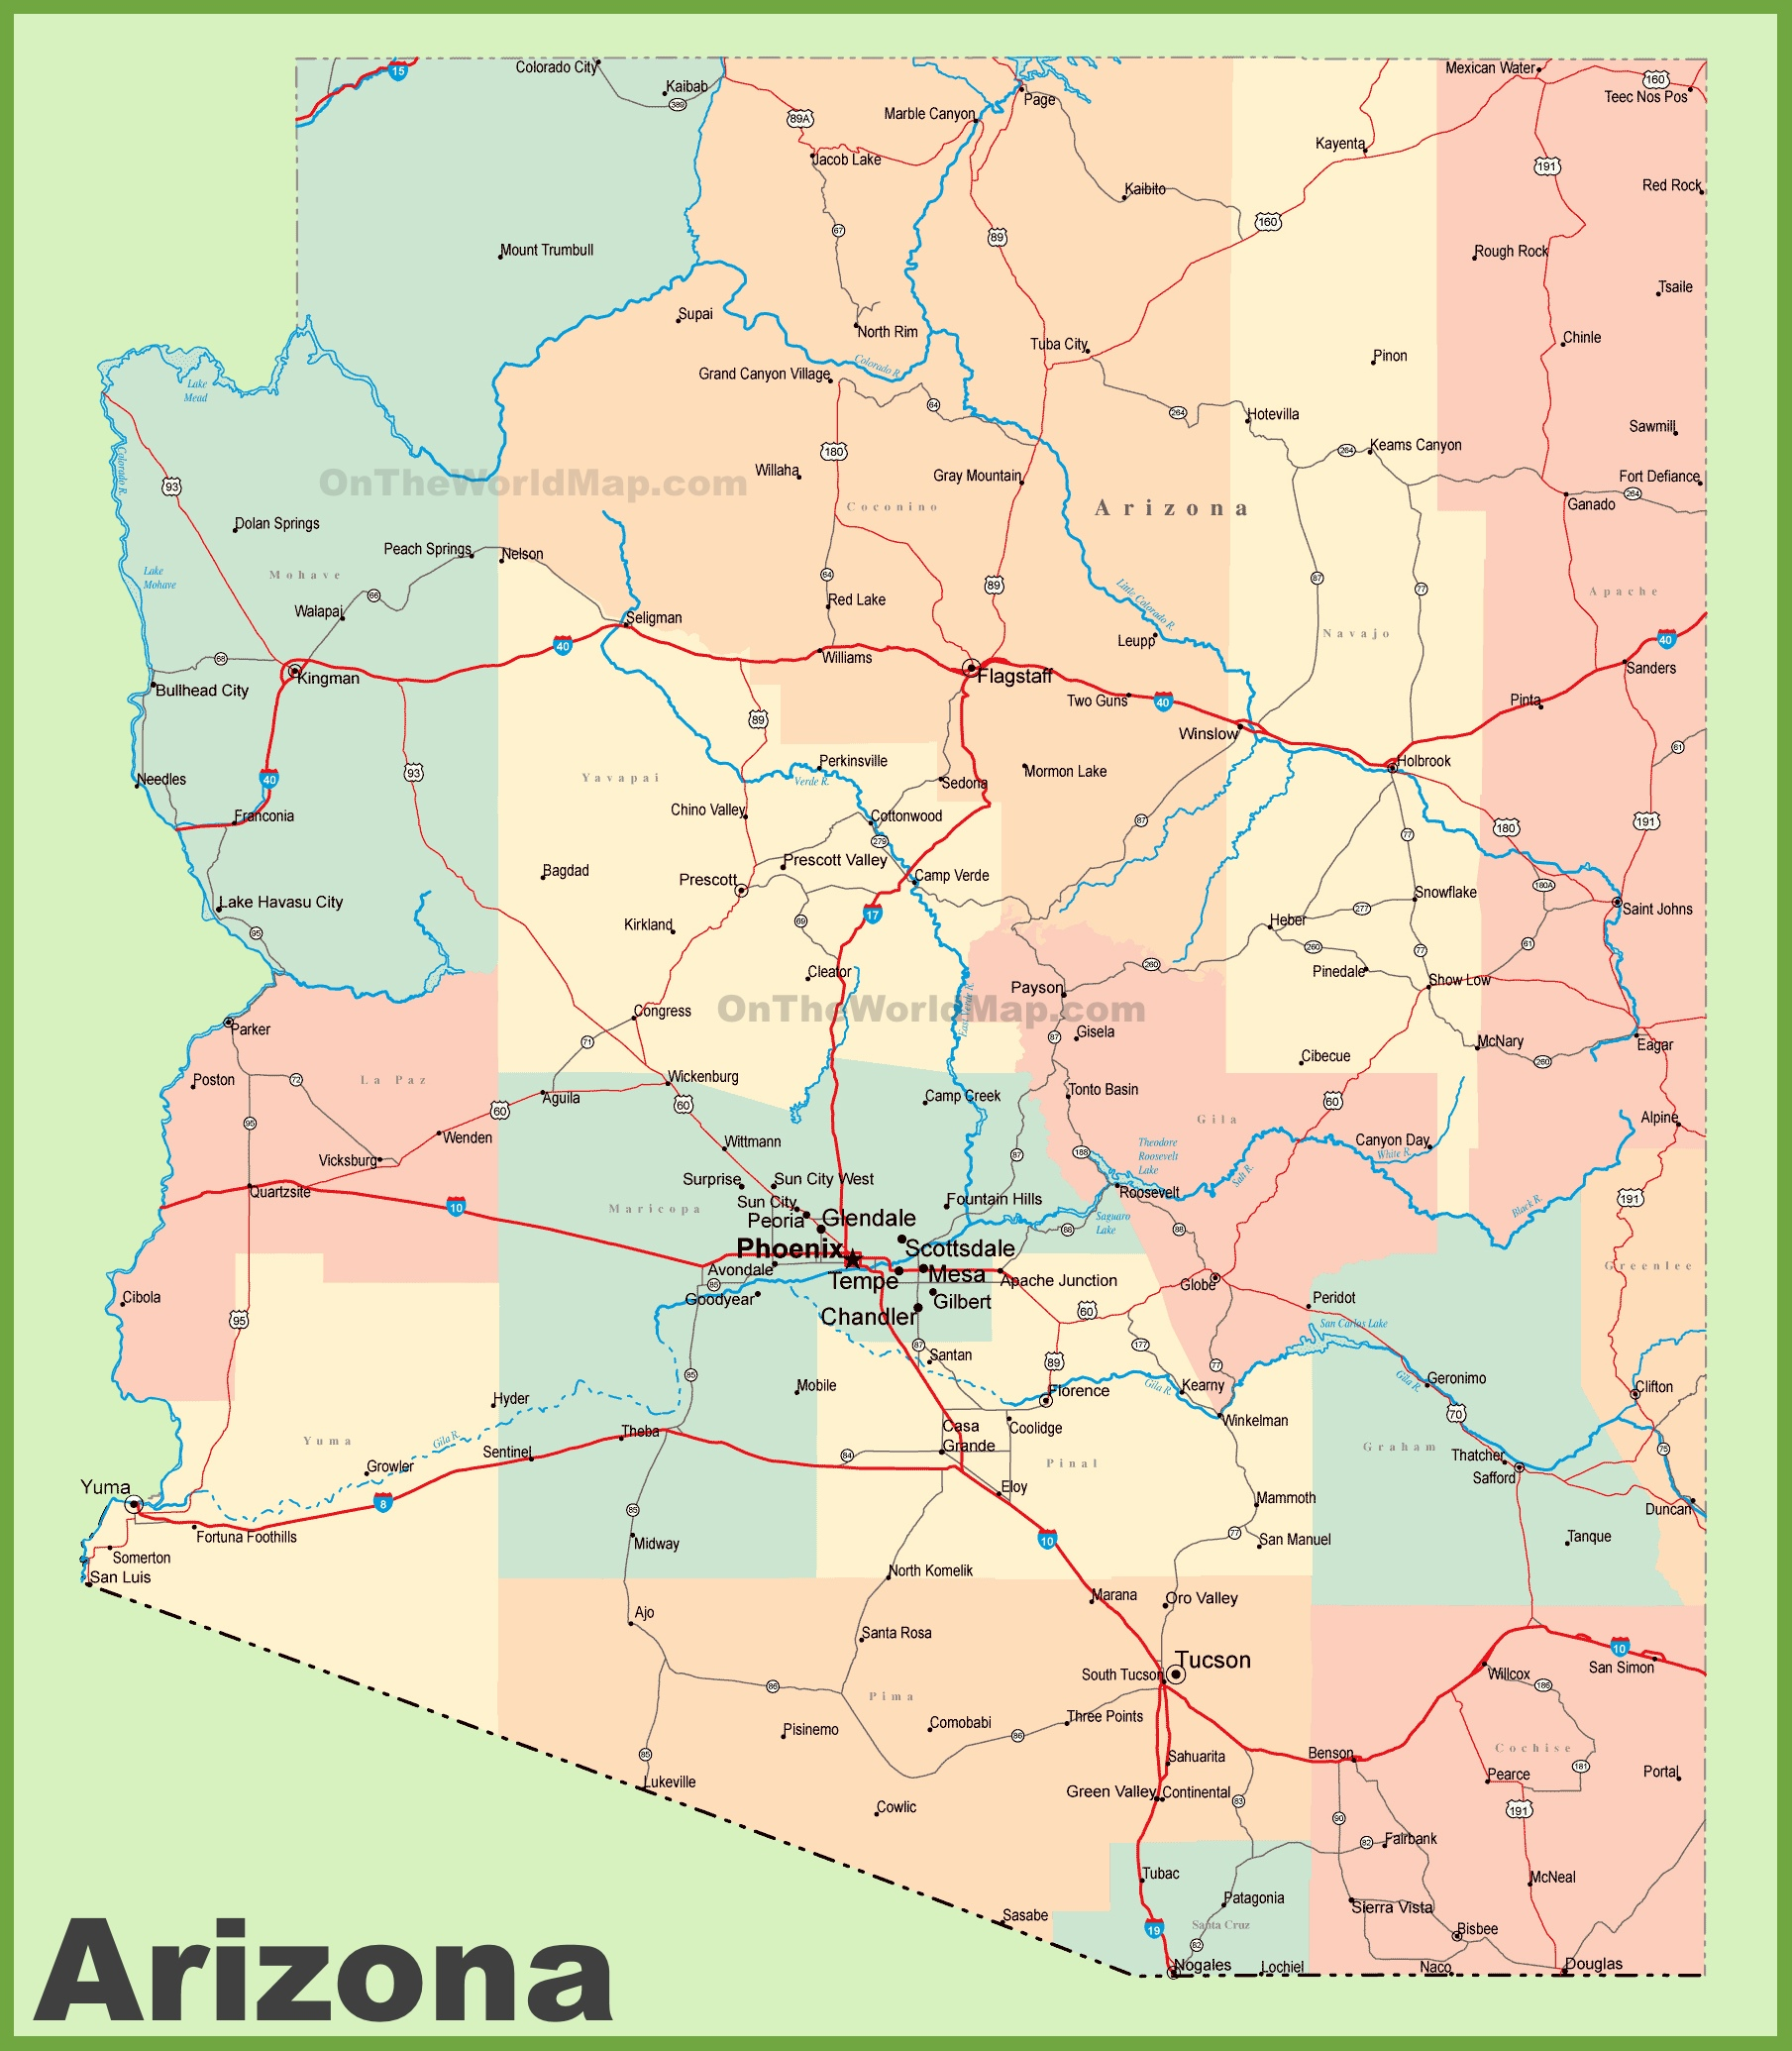 Map Of Arizona Cities And Towns Arizona road map with cities and towns Map Of Arizona Cities And Towns